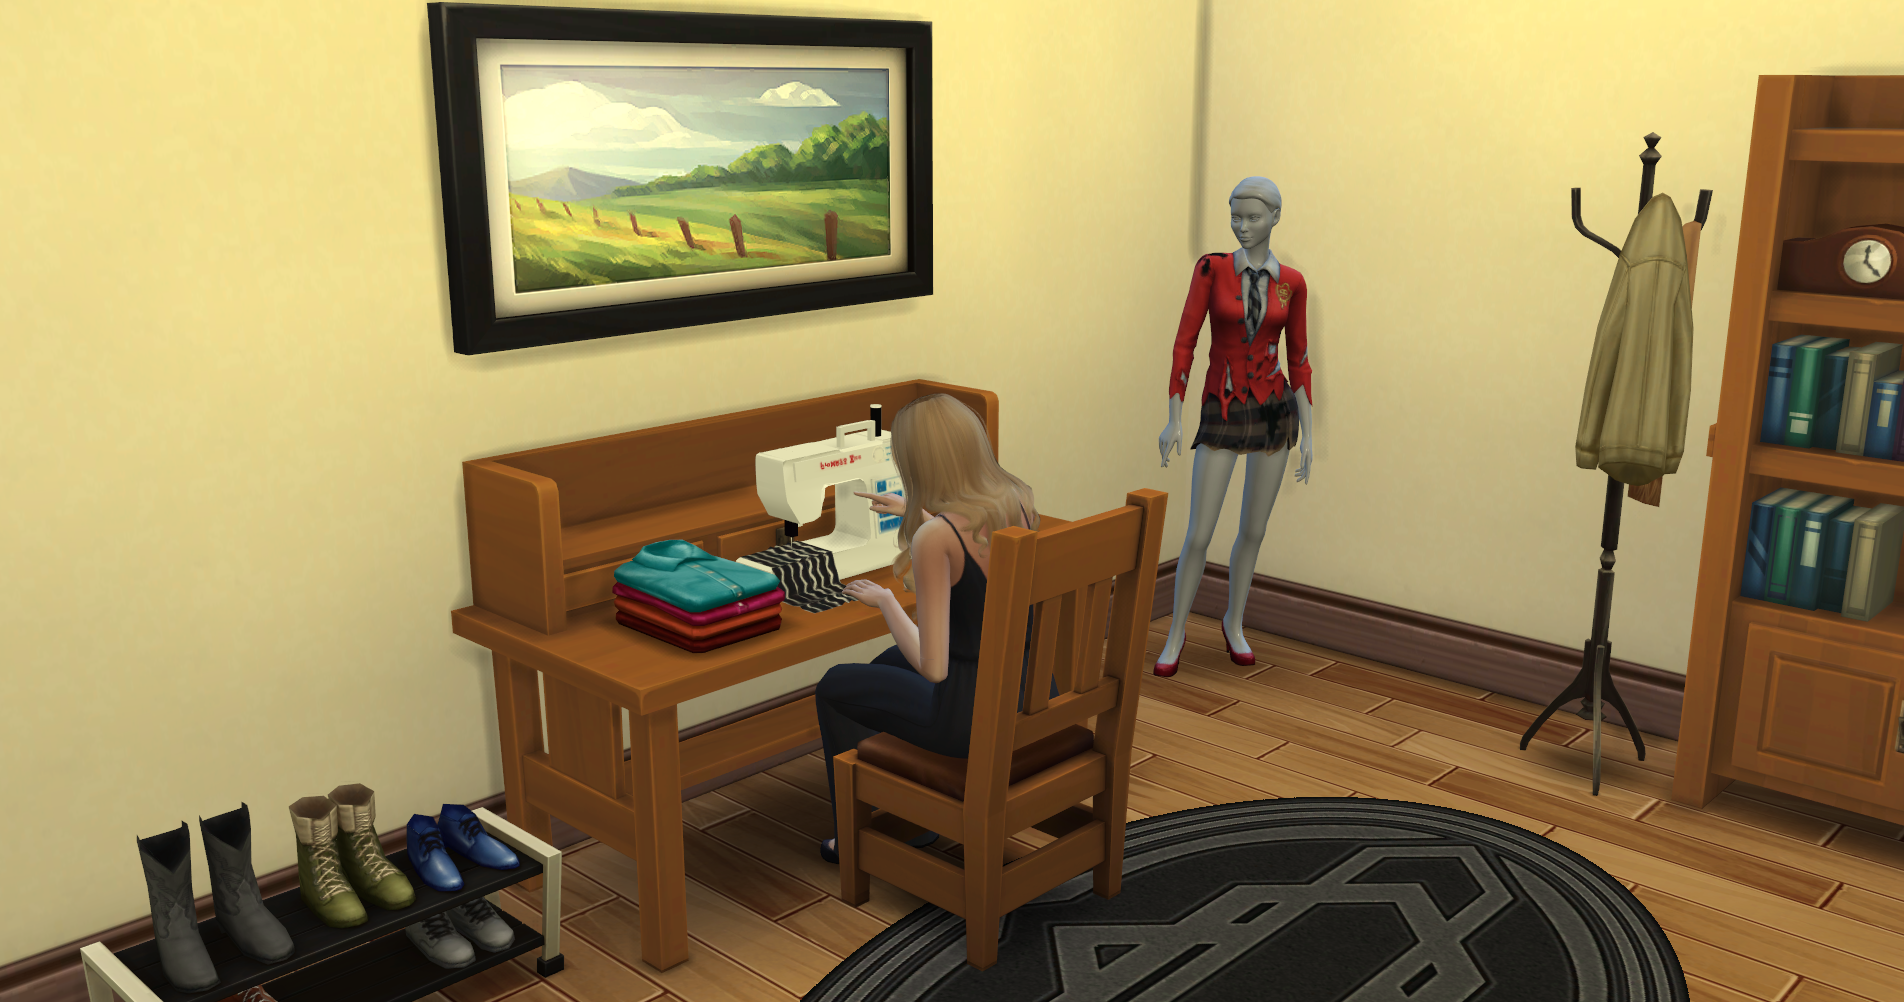 sims 3 cc furniture. The Sims 4: Functional Sewing Machine, Snow Effects, And More 3 Cc Furniture